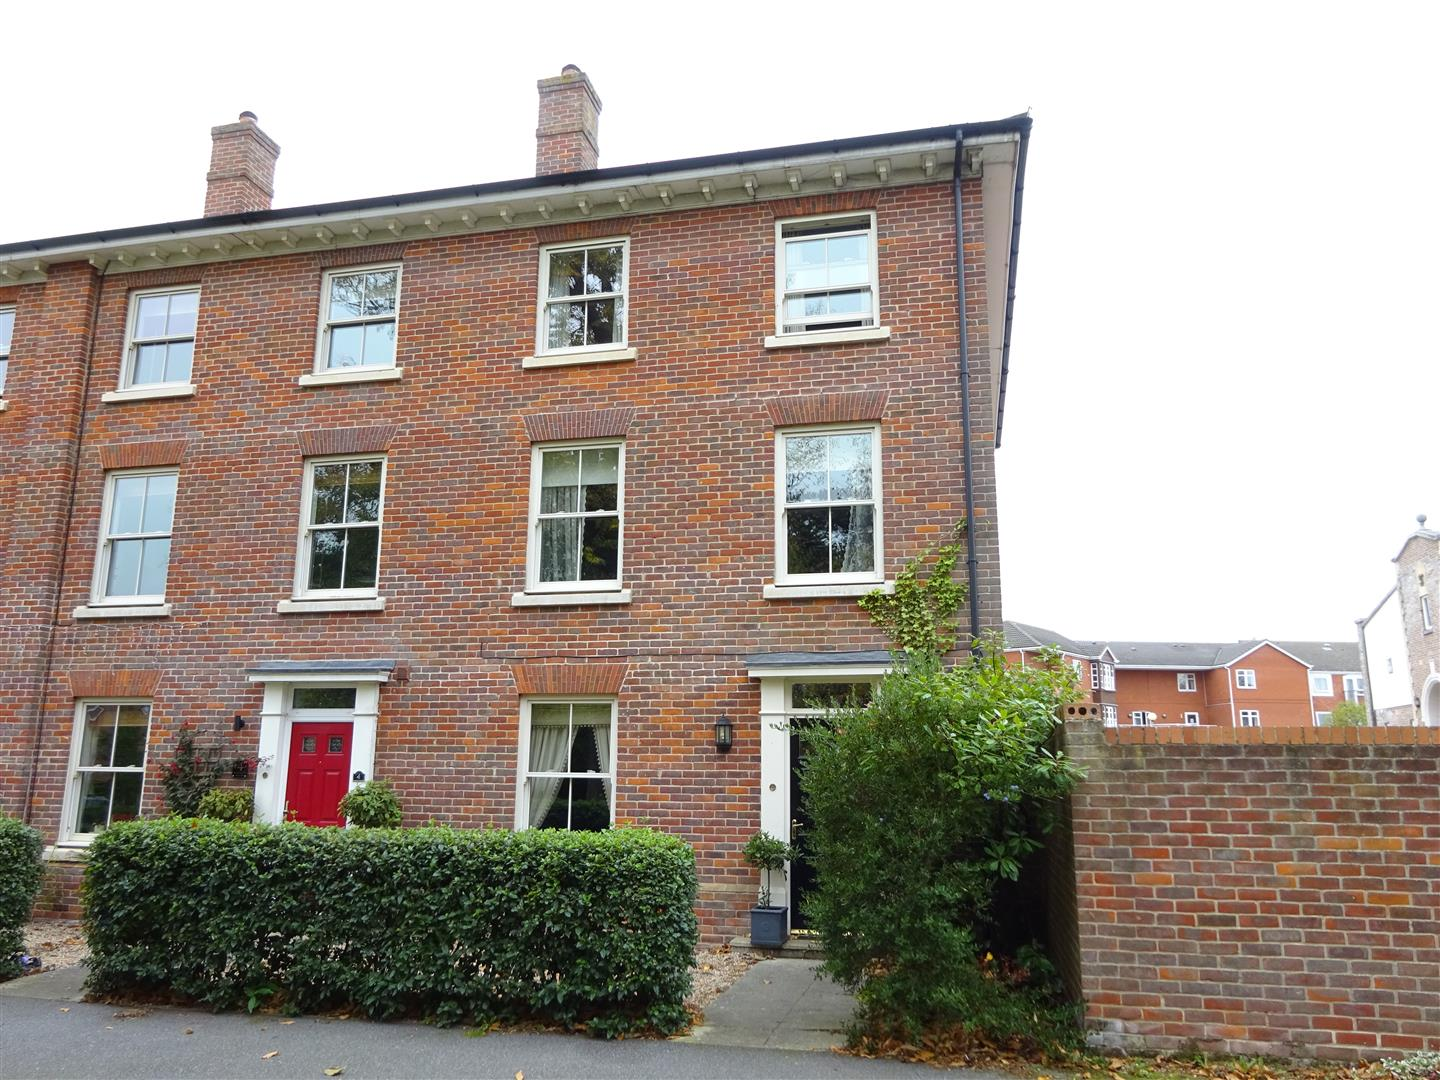 St. Anthonys Crescent, Ipswich, IP4 4SY